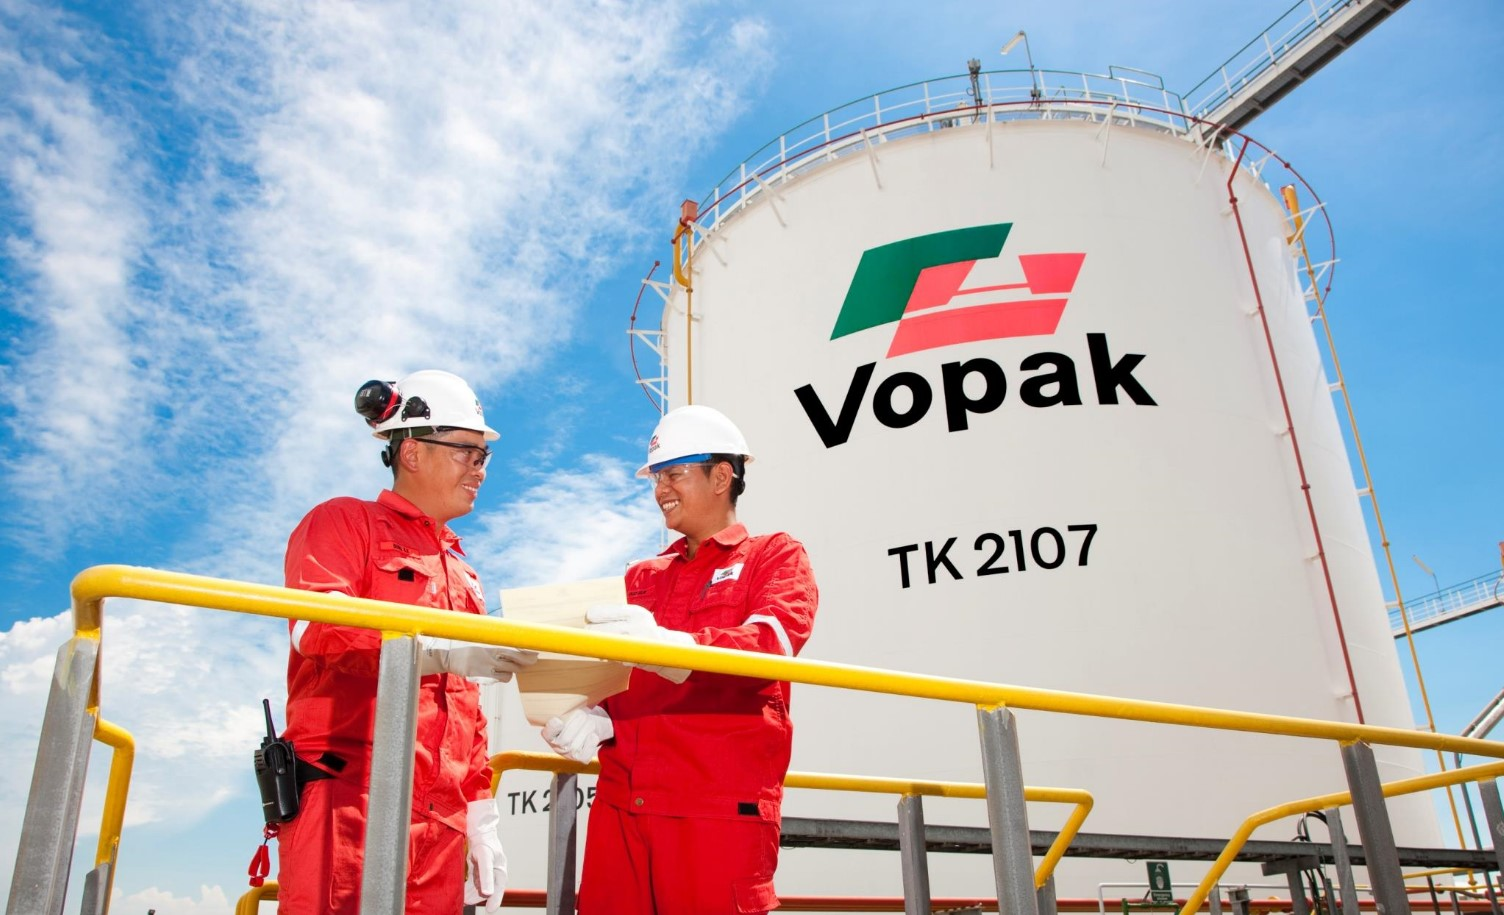 Vopak, ExxonMobil to conduct South Africa LNG terminal feasibility study